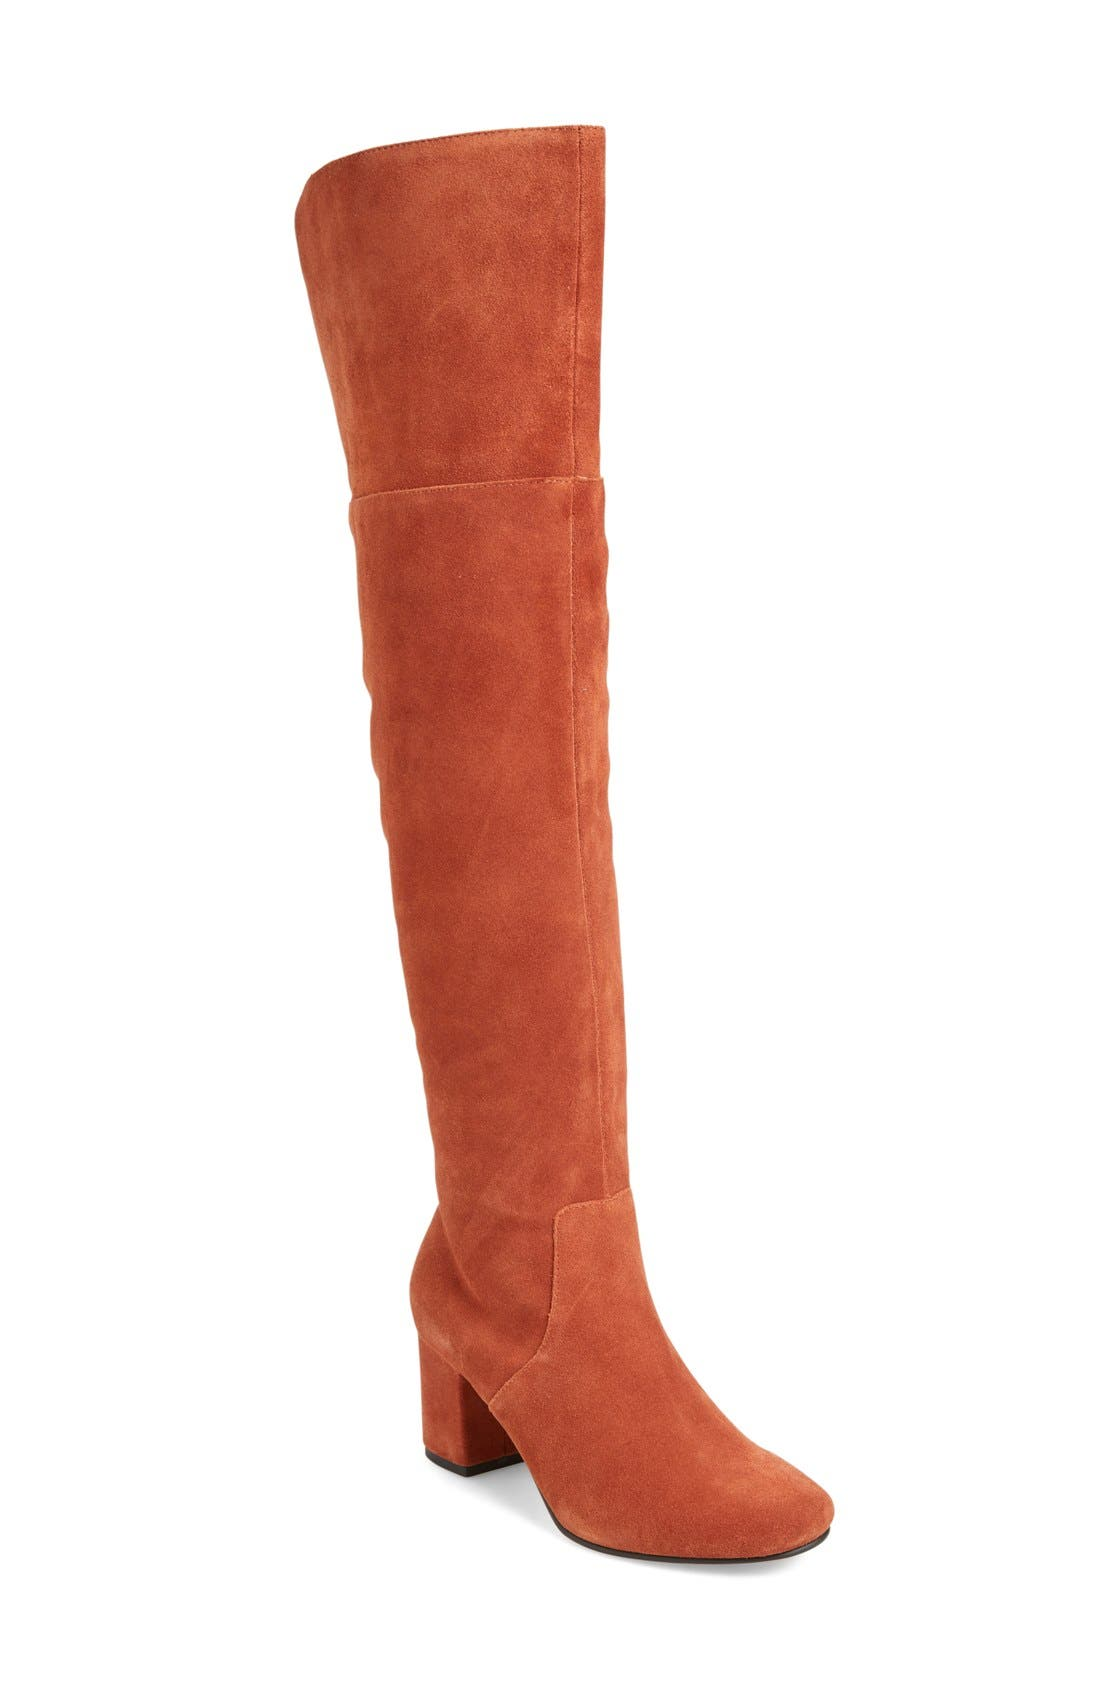 Alternate Image 1 Selected - Sole Society Leandra Over the Knee Boot (Women)